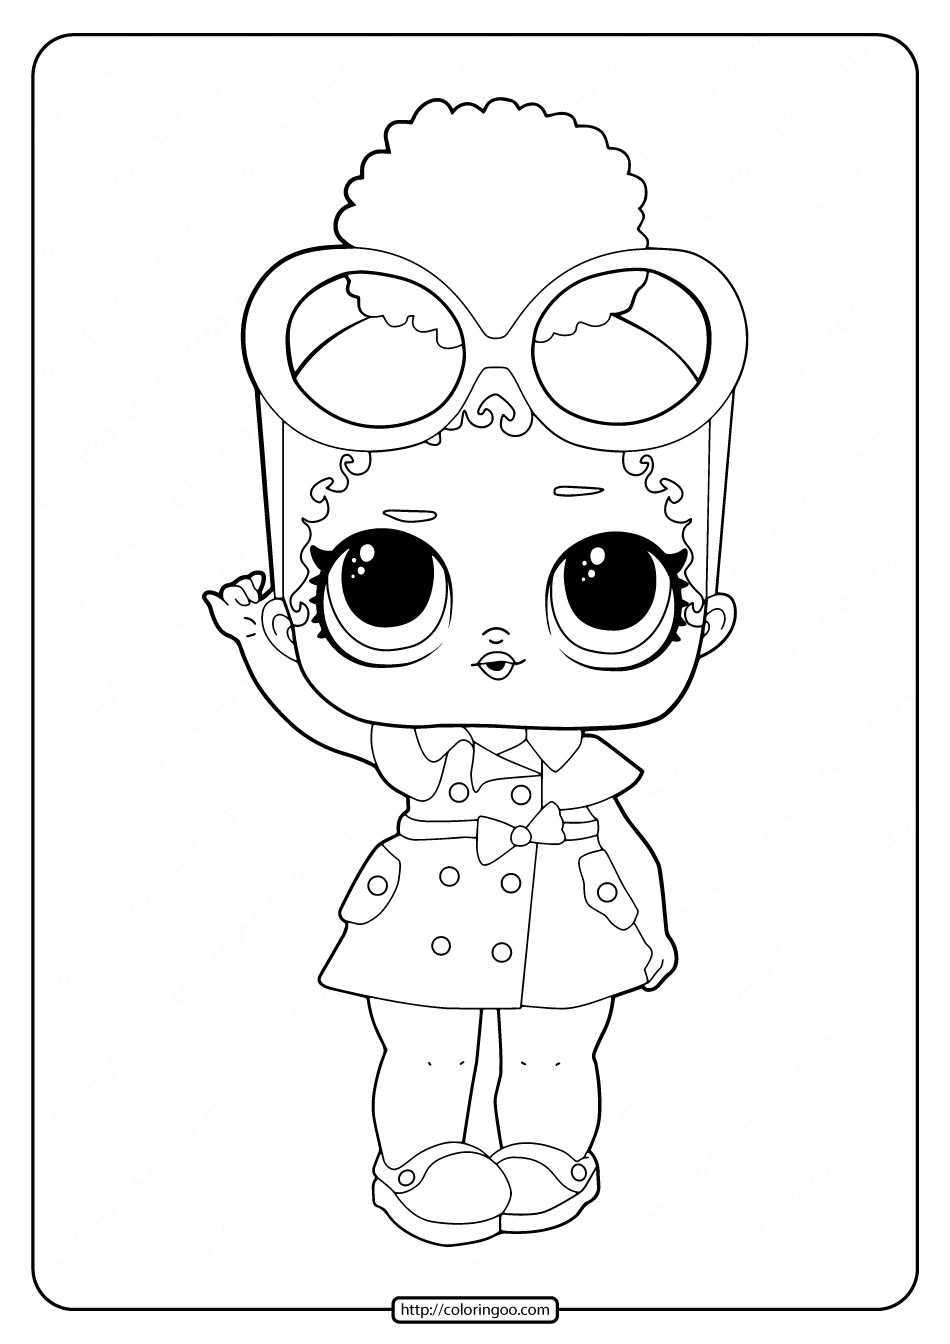 Printable Lol Surprise Boss Queen Coloring Pages Coloring Pages Lol Dolls Lol